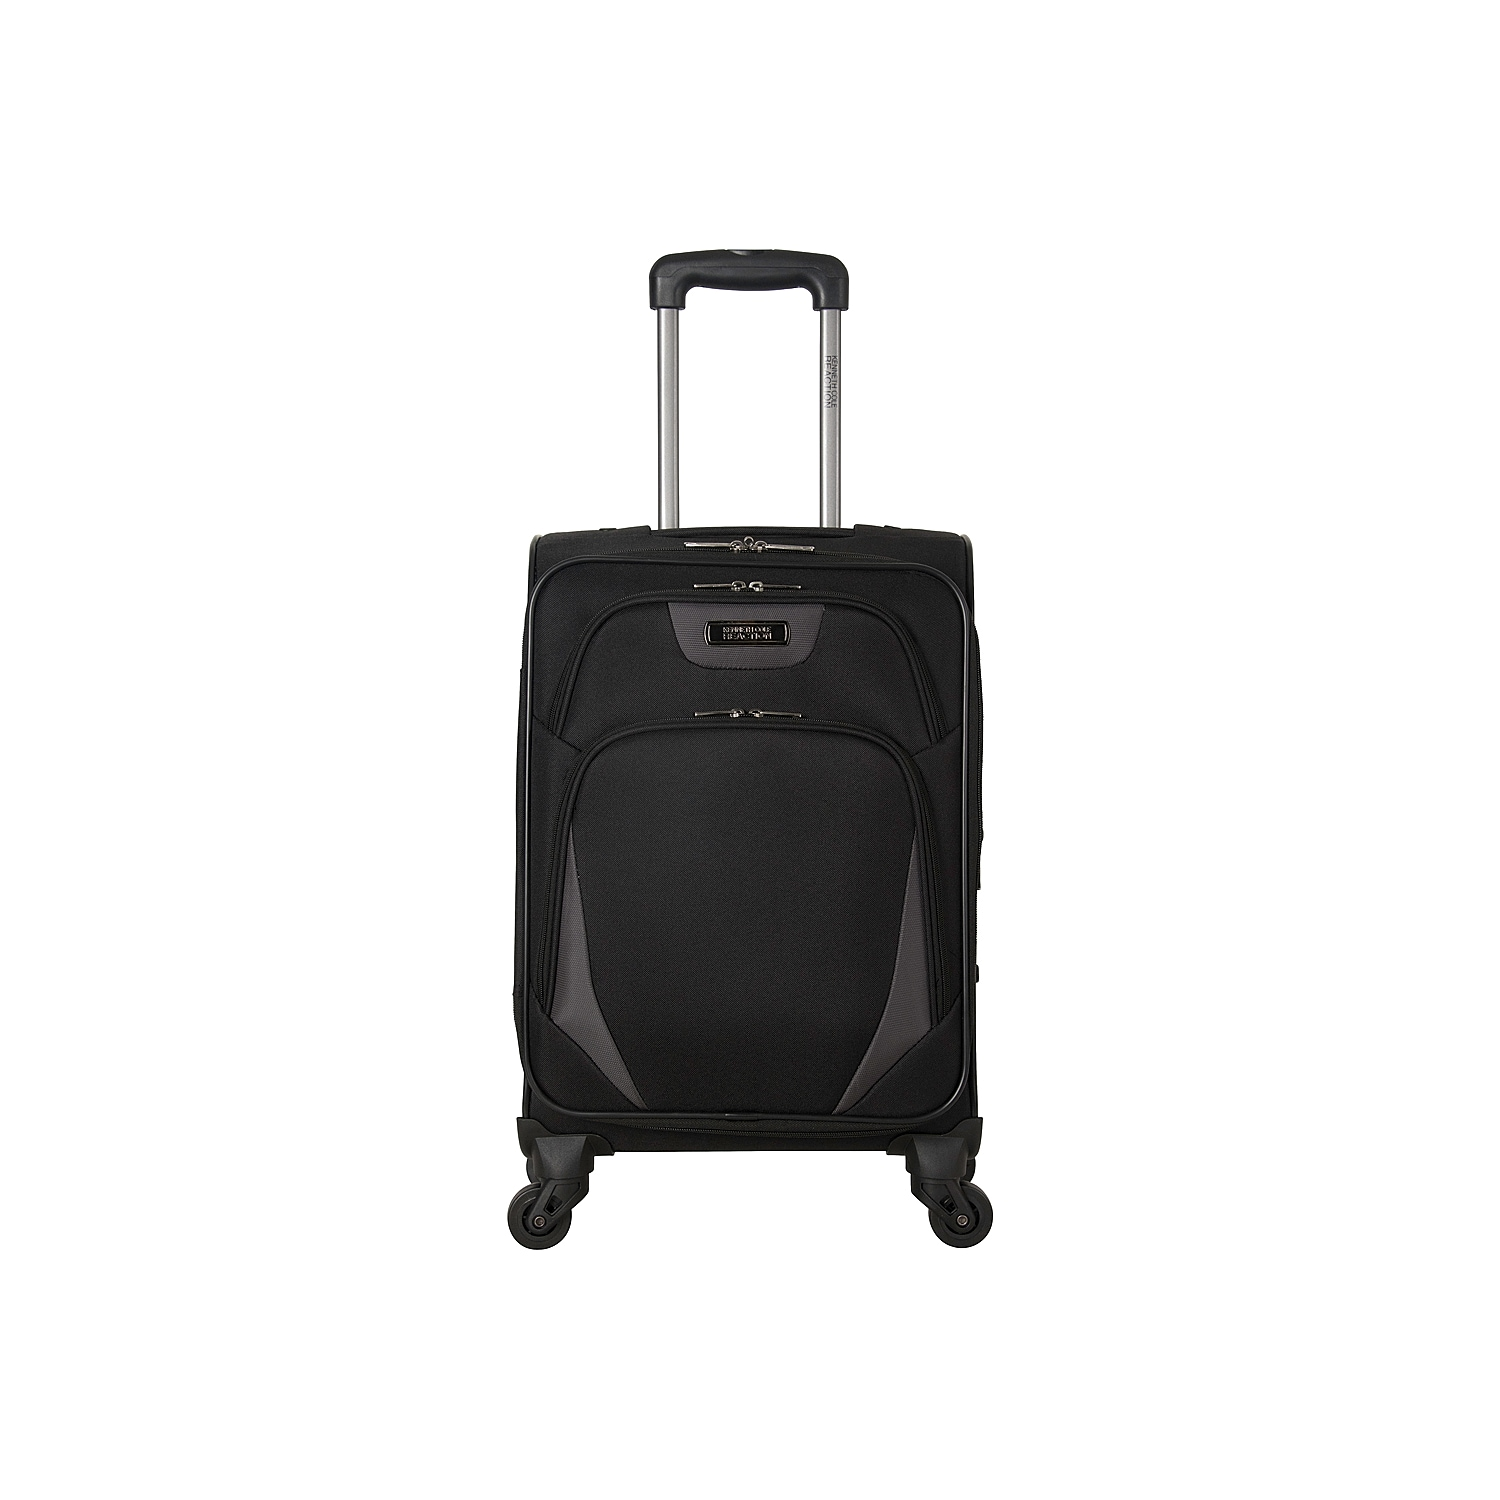 Breeze through airport security when toting this lightweight luggage from Kenneth Cole Reaction. The Poly expandable suitcase is fitted with 4 multi-directional spinners for effortless rolling. The flexible grab handles and locking retractable trolley handle allow make it easy to manage your carry-on.